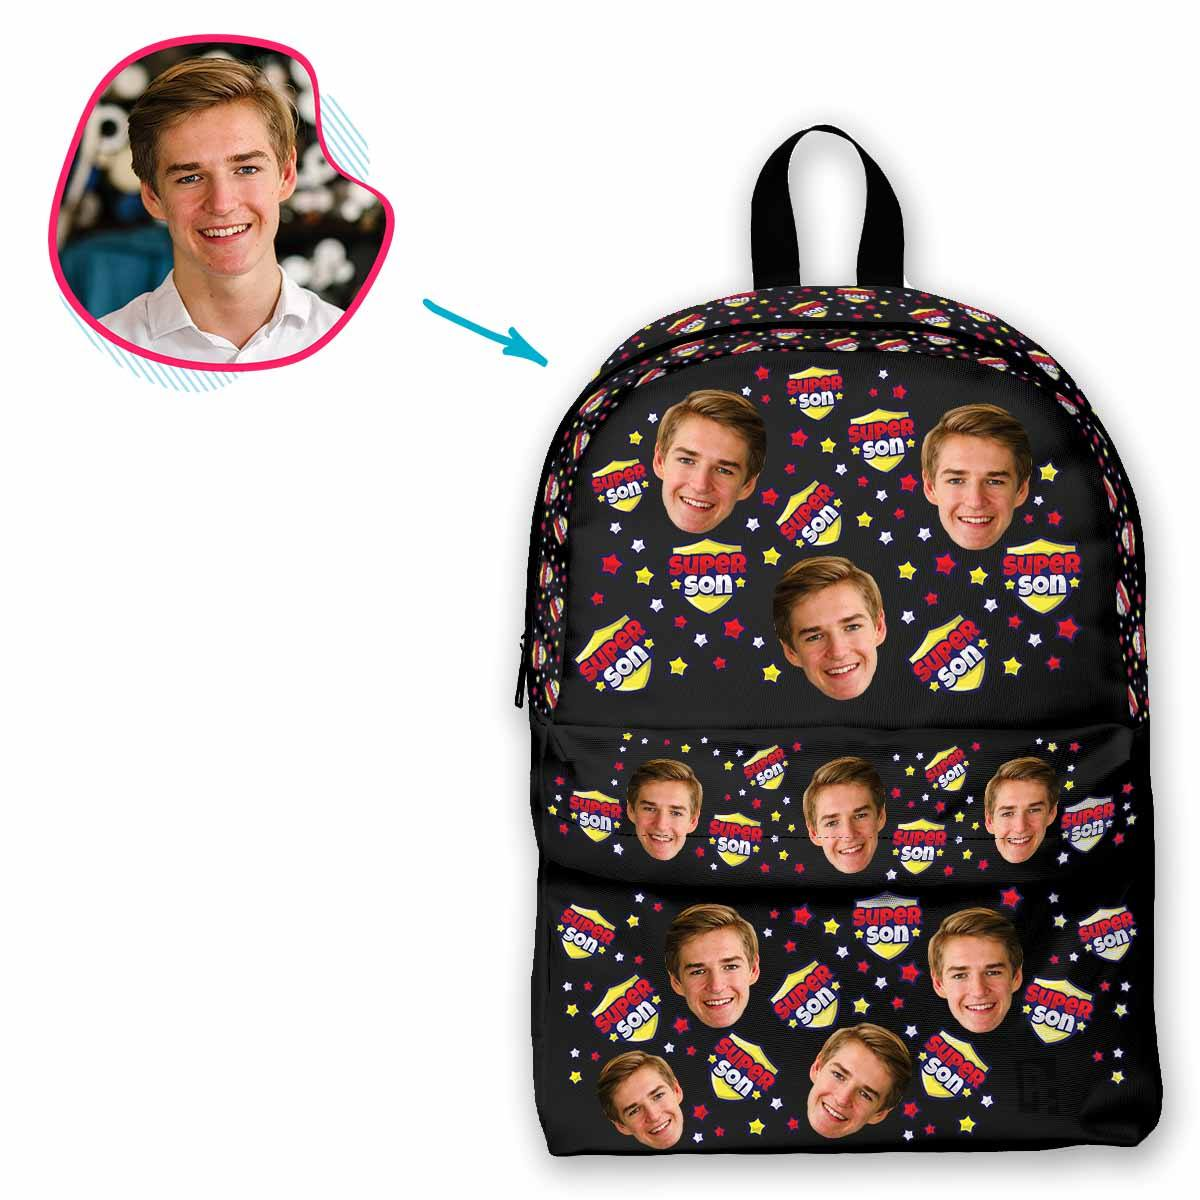 dark Super Son classic backpack personalized with photo of face printed on it